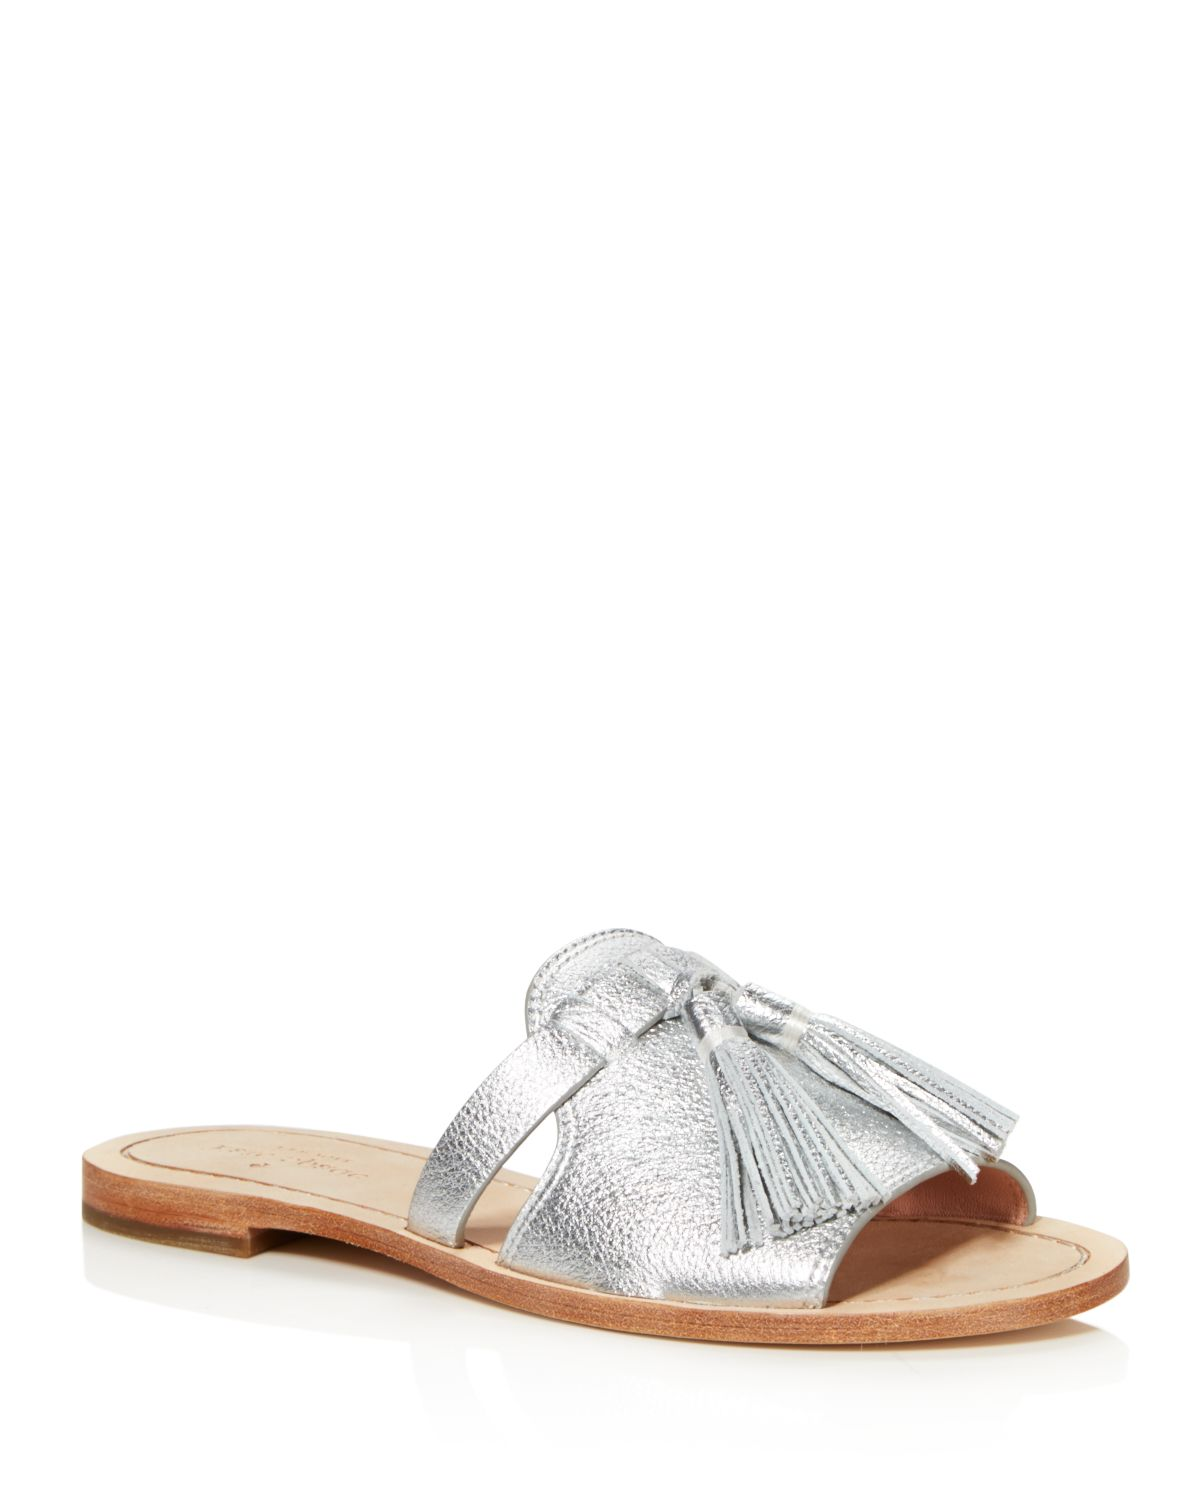 Kate Spade New York Women's Coby Metallic Leather Tassel Slide Sandals